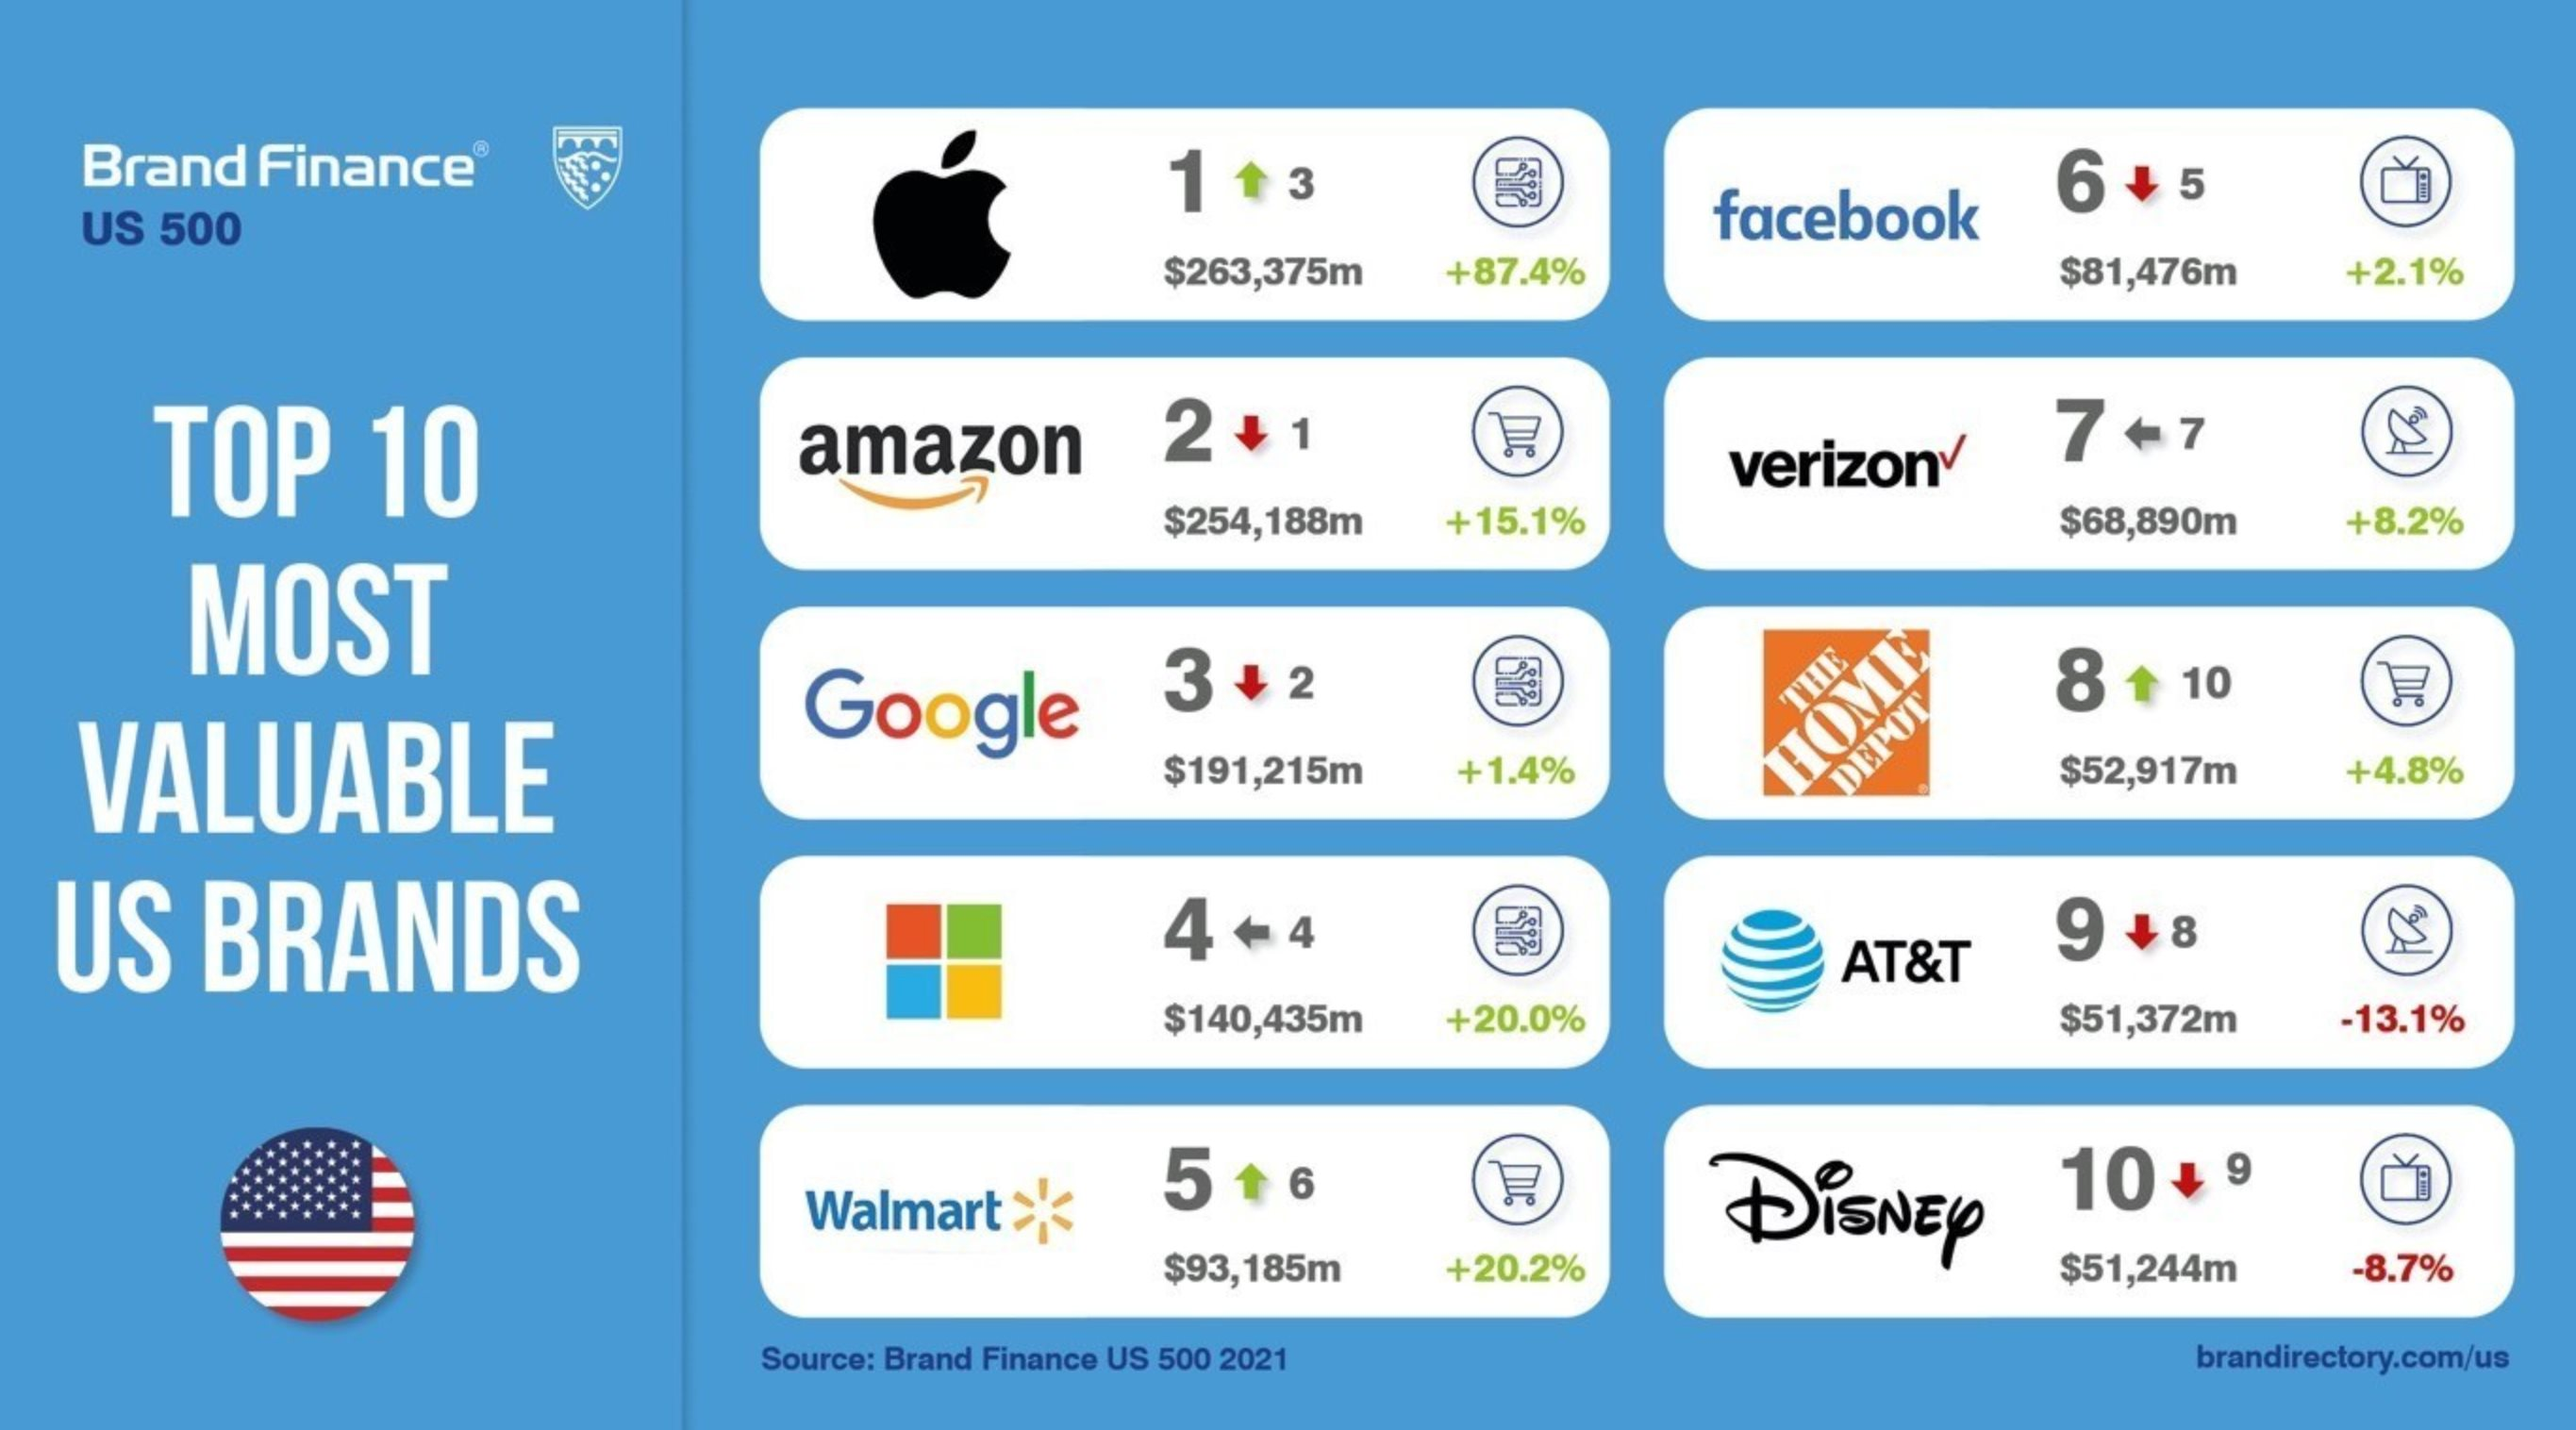 Apple named world's most valuable brand, beating Amazon and Google